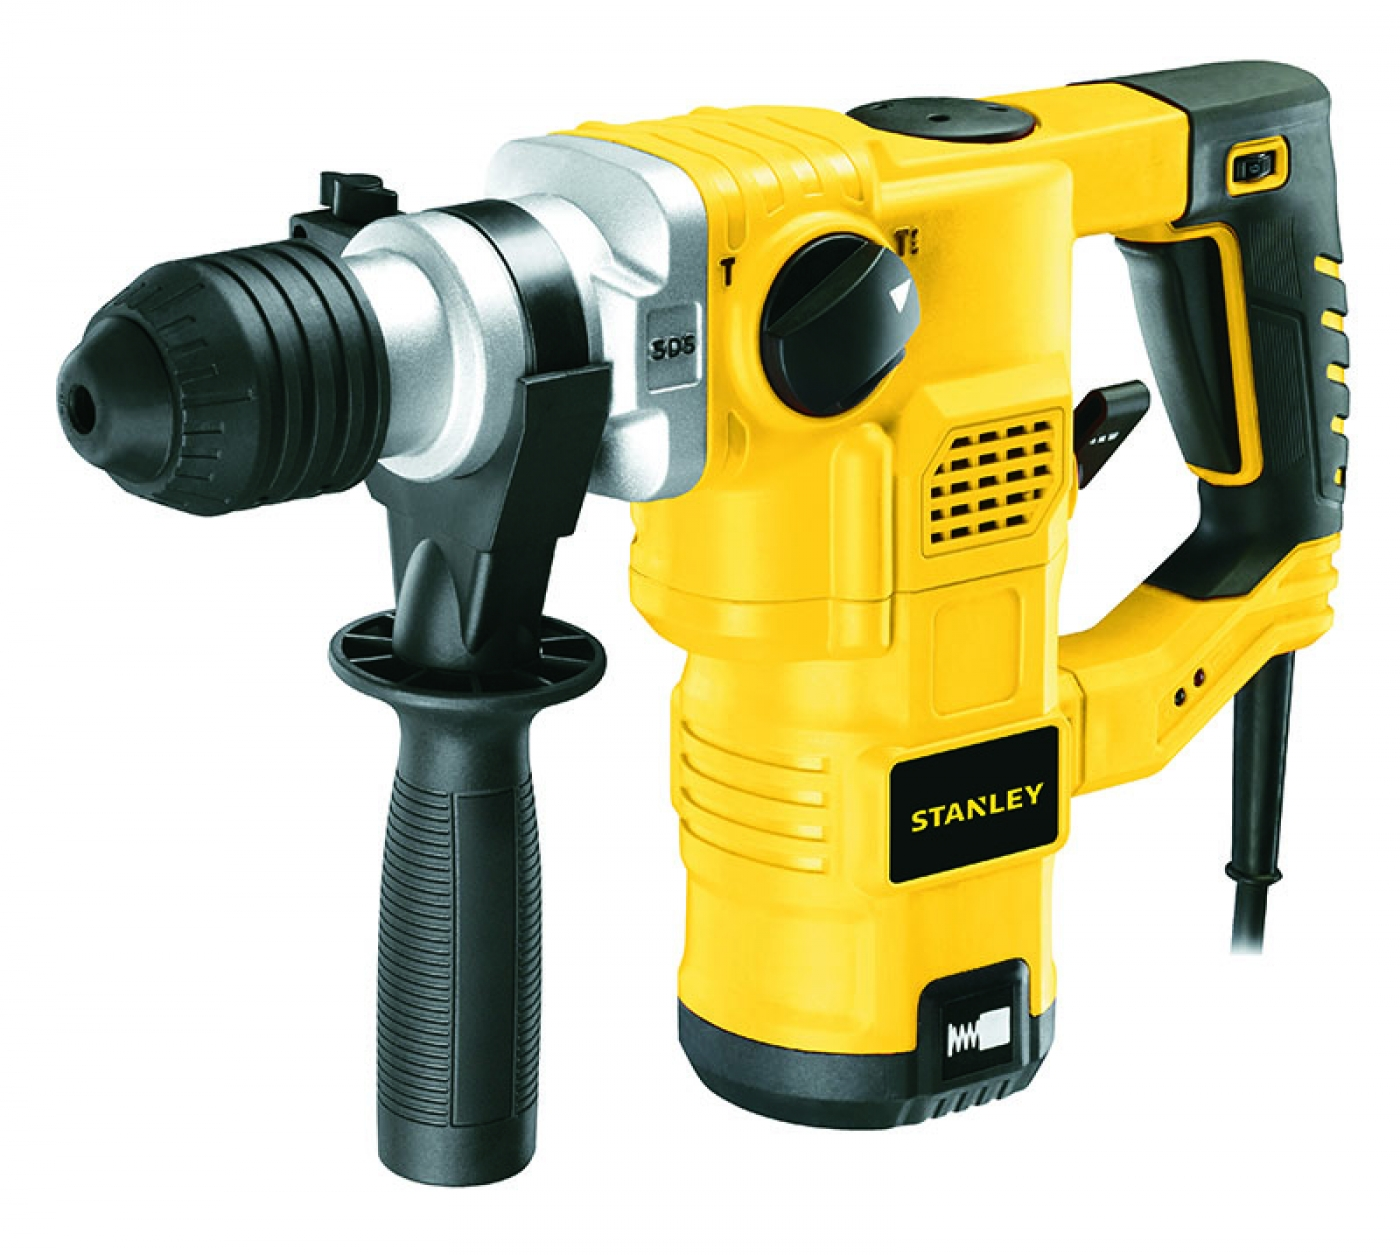 32MM 1250W 3 MODE L-SHAPE SDS-PLUS HAMMER